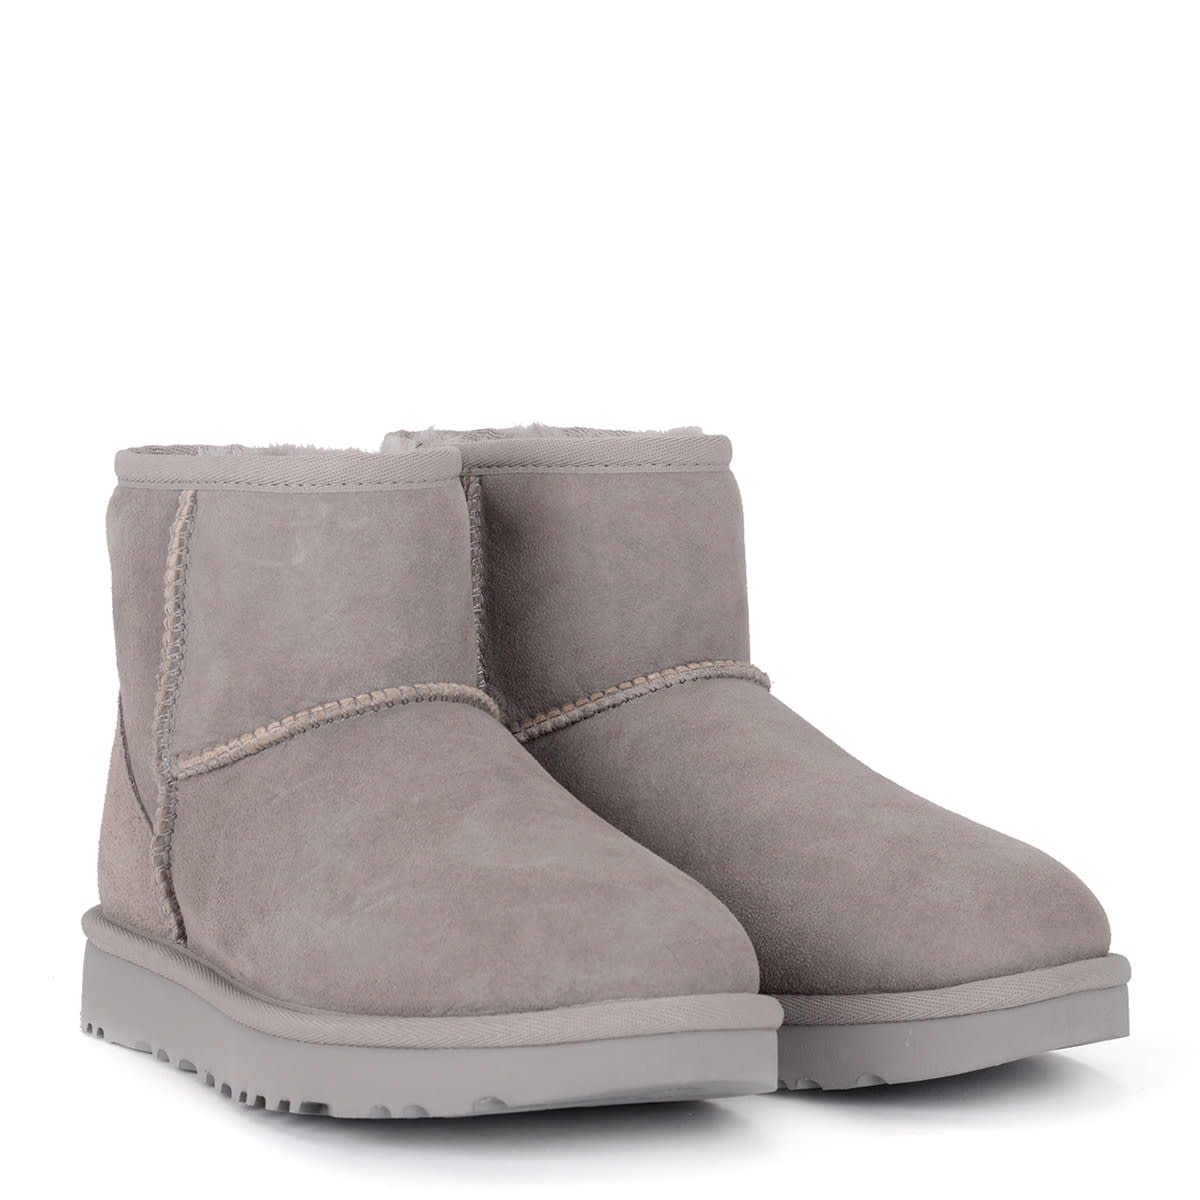 20f9f20be46 Ugg Classic Ii Mini Light Grey Suede Sheepskin Ankle Boots.